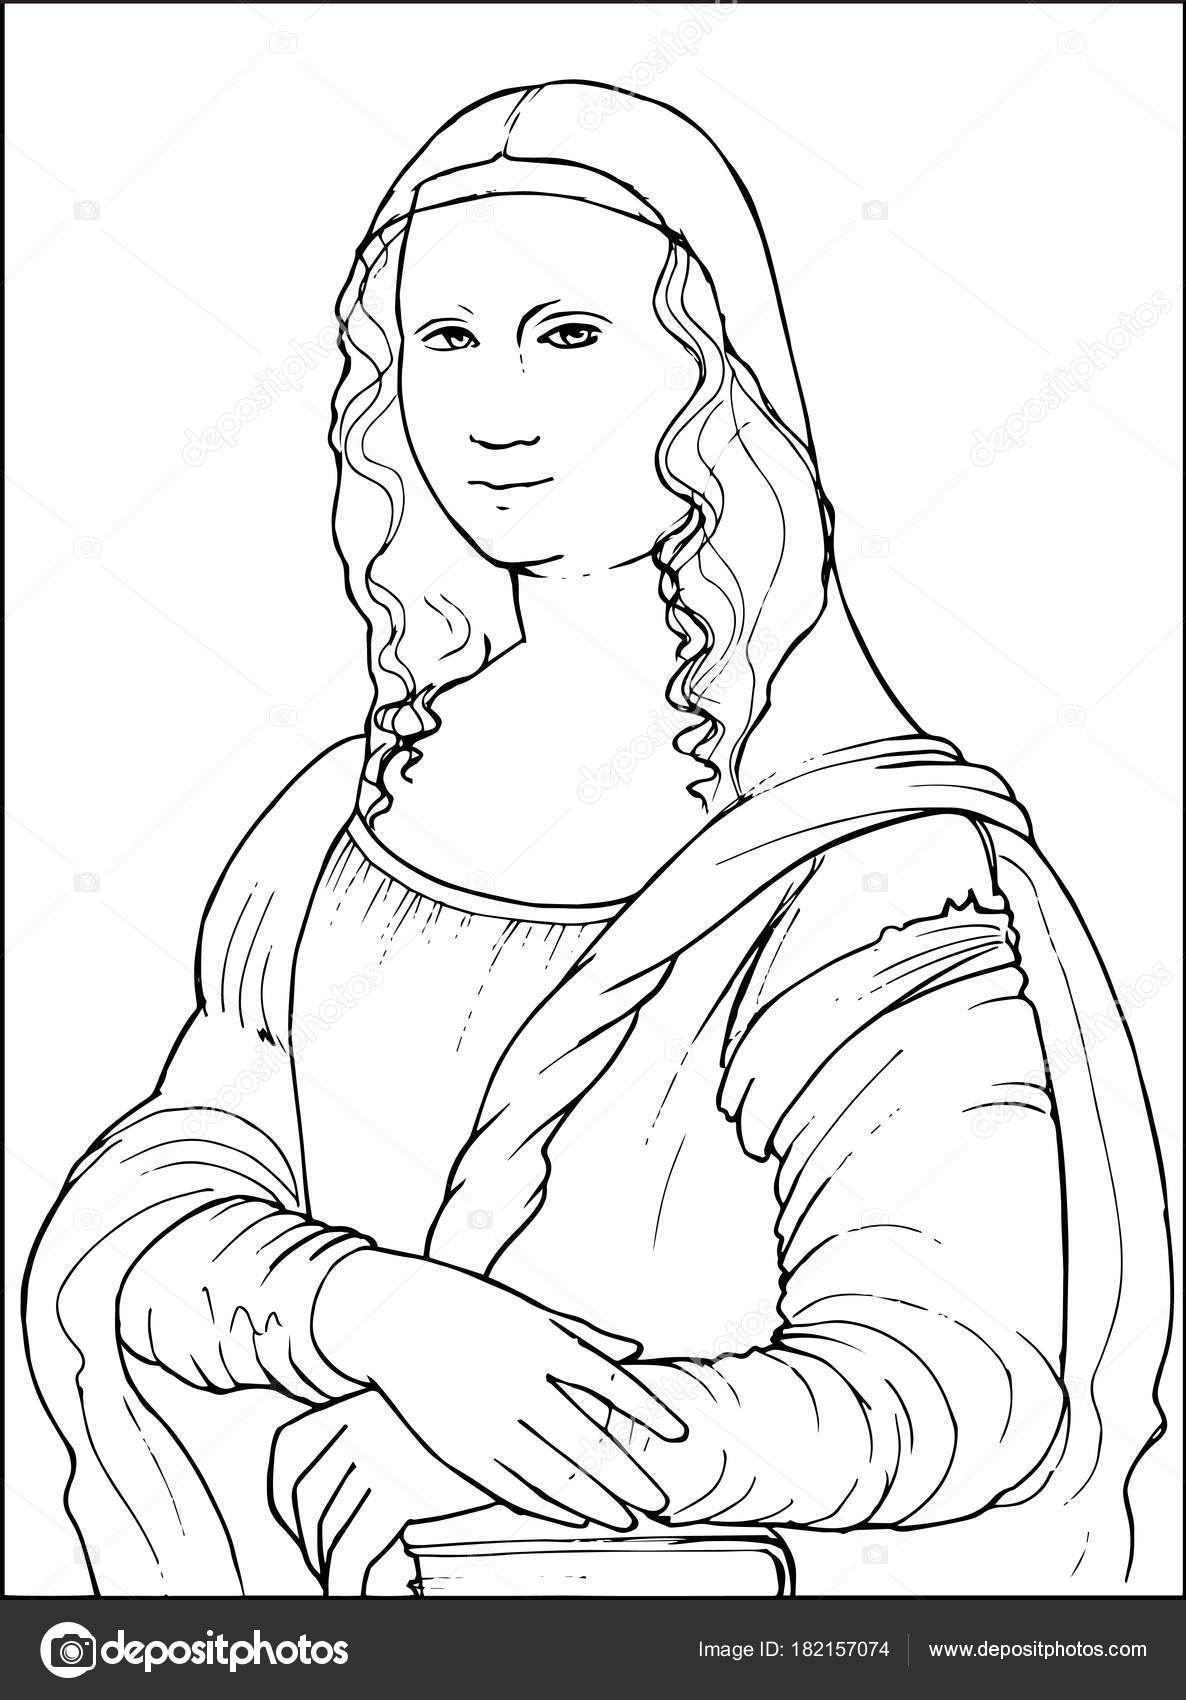 Mona Lisa Coloring Vector Illustration Stock Vector